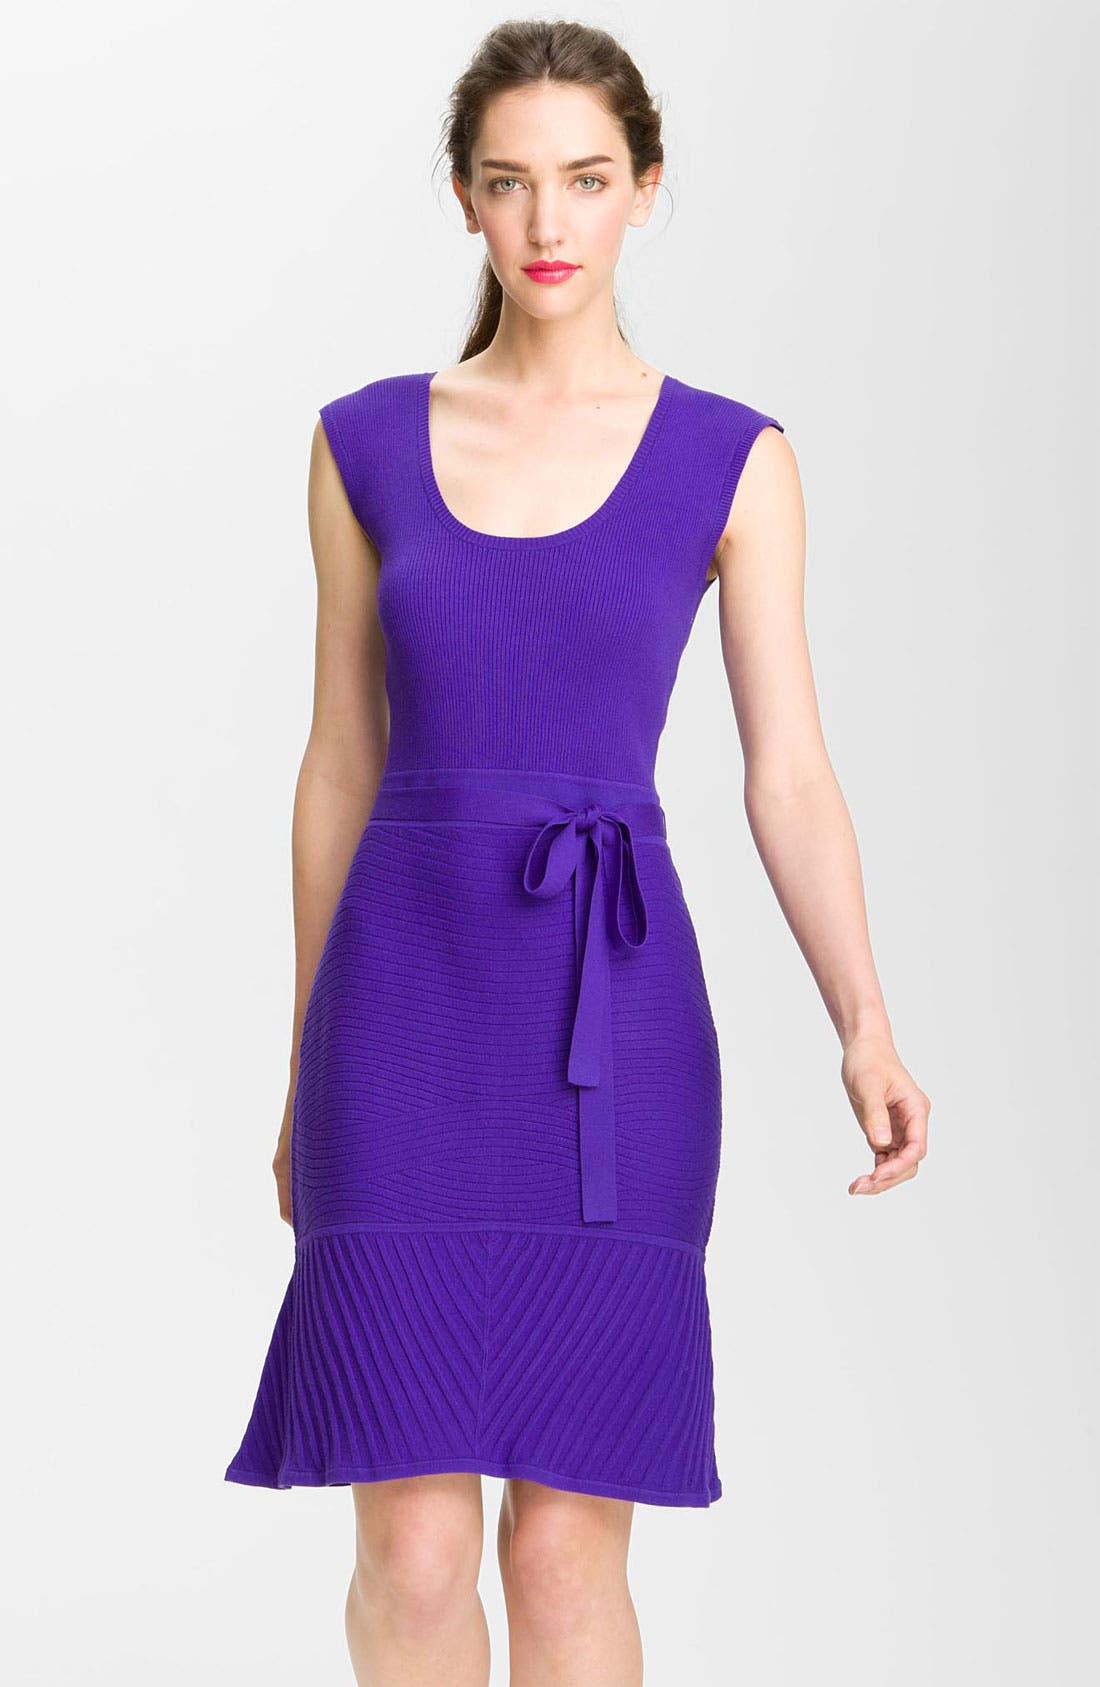 Alternate Image 1 Selected - Milly 'Ava' Mixed Knit Sweater Dress